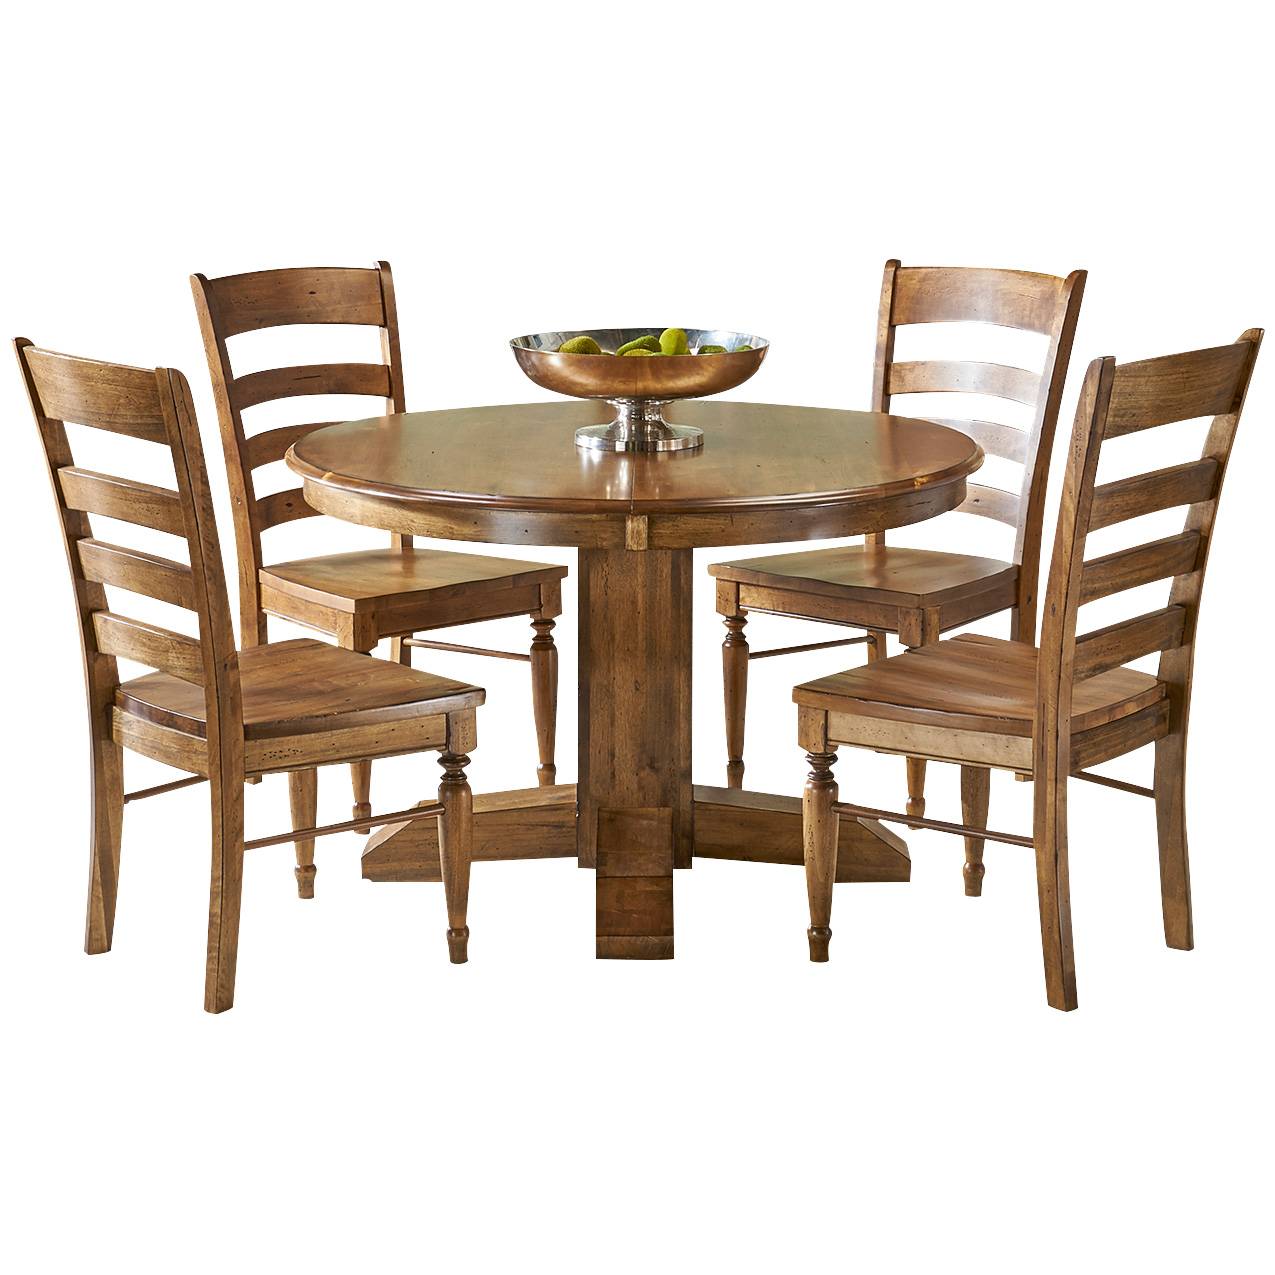 America | Bennett Smokey Quartz 5 Piece Dining Set